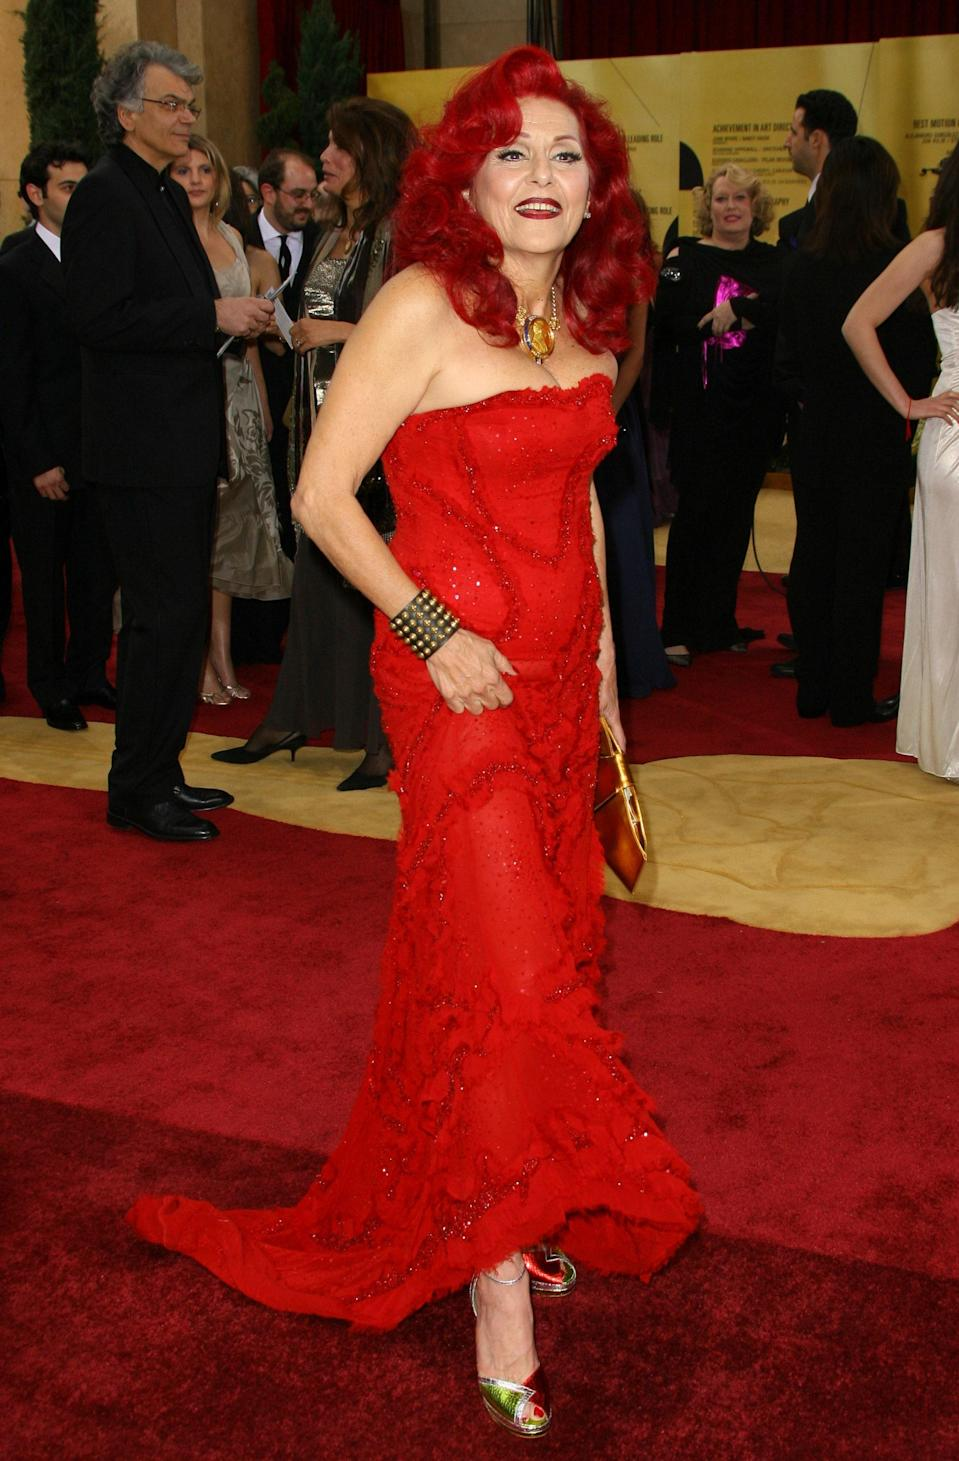 """Nominated for her iconic costume work in <em>The Devil Wears Prada</em>, Patricia Field—who also outfitted <em>Sex and The City</em>—had every high-fashion designer at her fingertips. Yet, she chose a look that spoke to her inimitable style. Her red gown was from fellow costume designer <a href=""""https://www.instagram.com/daviddalrympleinc/?hl=en"""" rel=""""nofollow noopener"""" target=""""_blank"""" data-ylk=""""slk:David Dalrymple"""" class=""""link rapid-noclick-resp"""">David Dalrymple</a>, who Field carried <a href=""""https://patriciafield.com/collections/david-dalrymple-for-house-of-field"""" rel=""""nofollow noopener"""" target=""""_blank"""" data-ylk=""""slk:in her store"""" class=""""link rapid-noclick-resp"""">in her store</a>. She accessorized with a vintage Bulgari necklace complete with diamonds, rubies, and sapphires and a pair of Payless shoes, mastering the art of high-low dressing on the red carpet."""